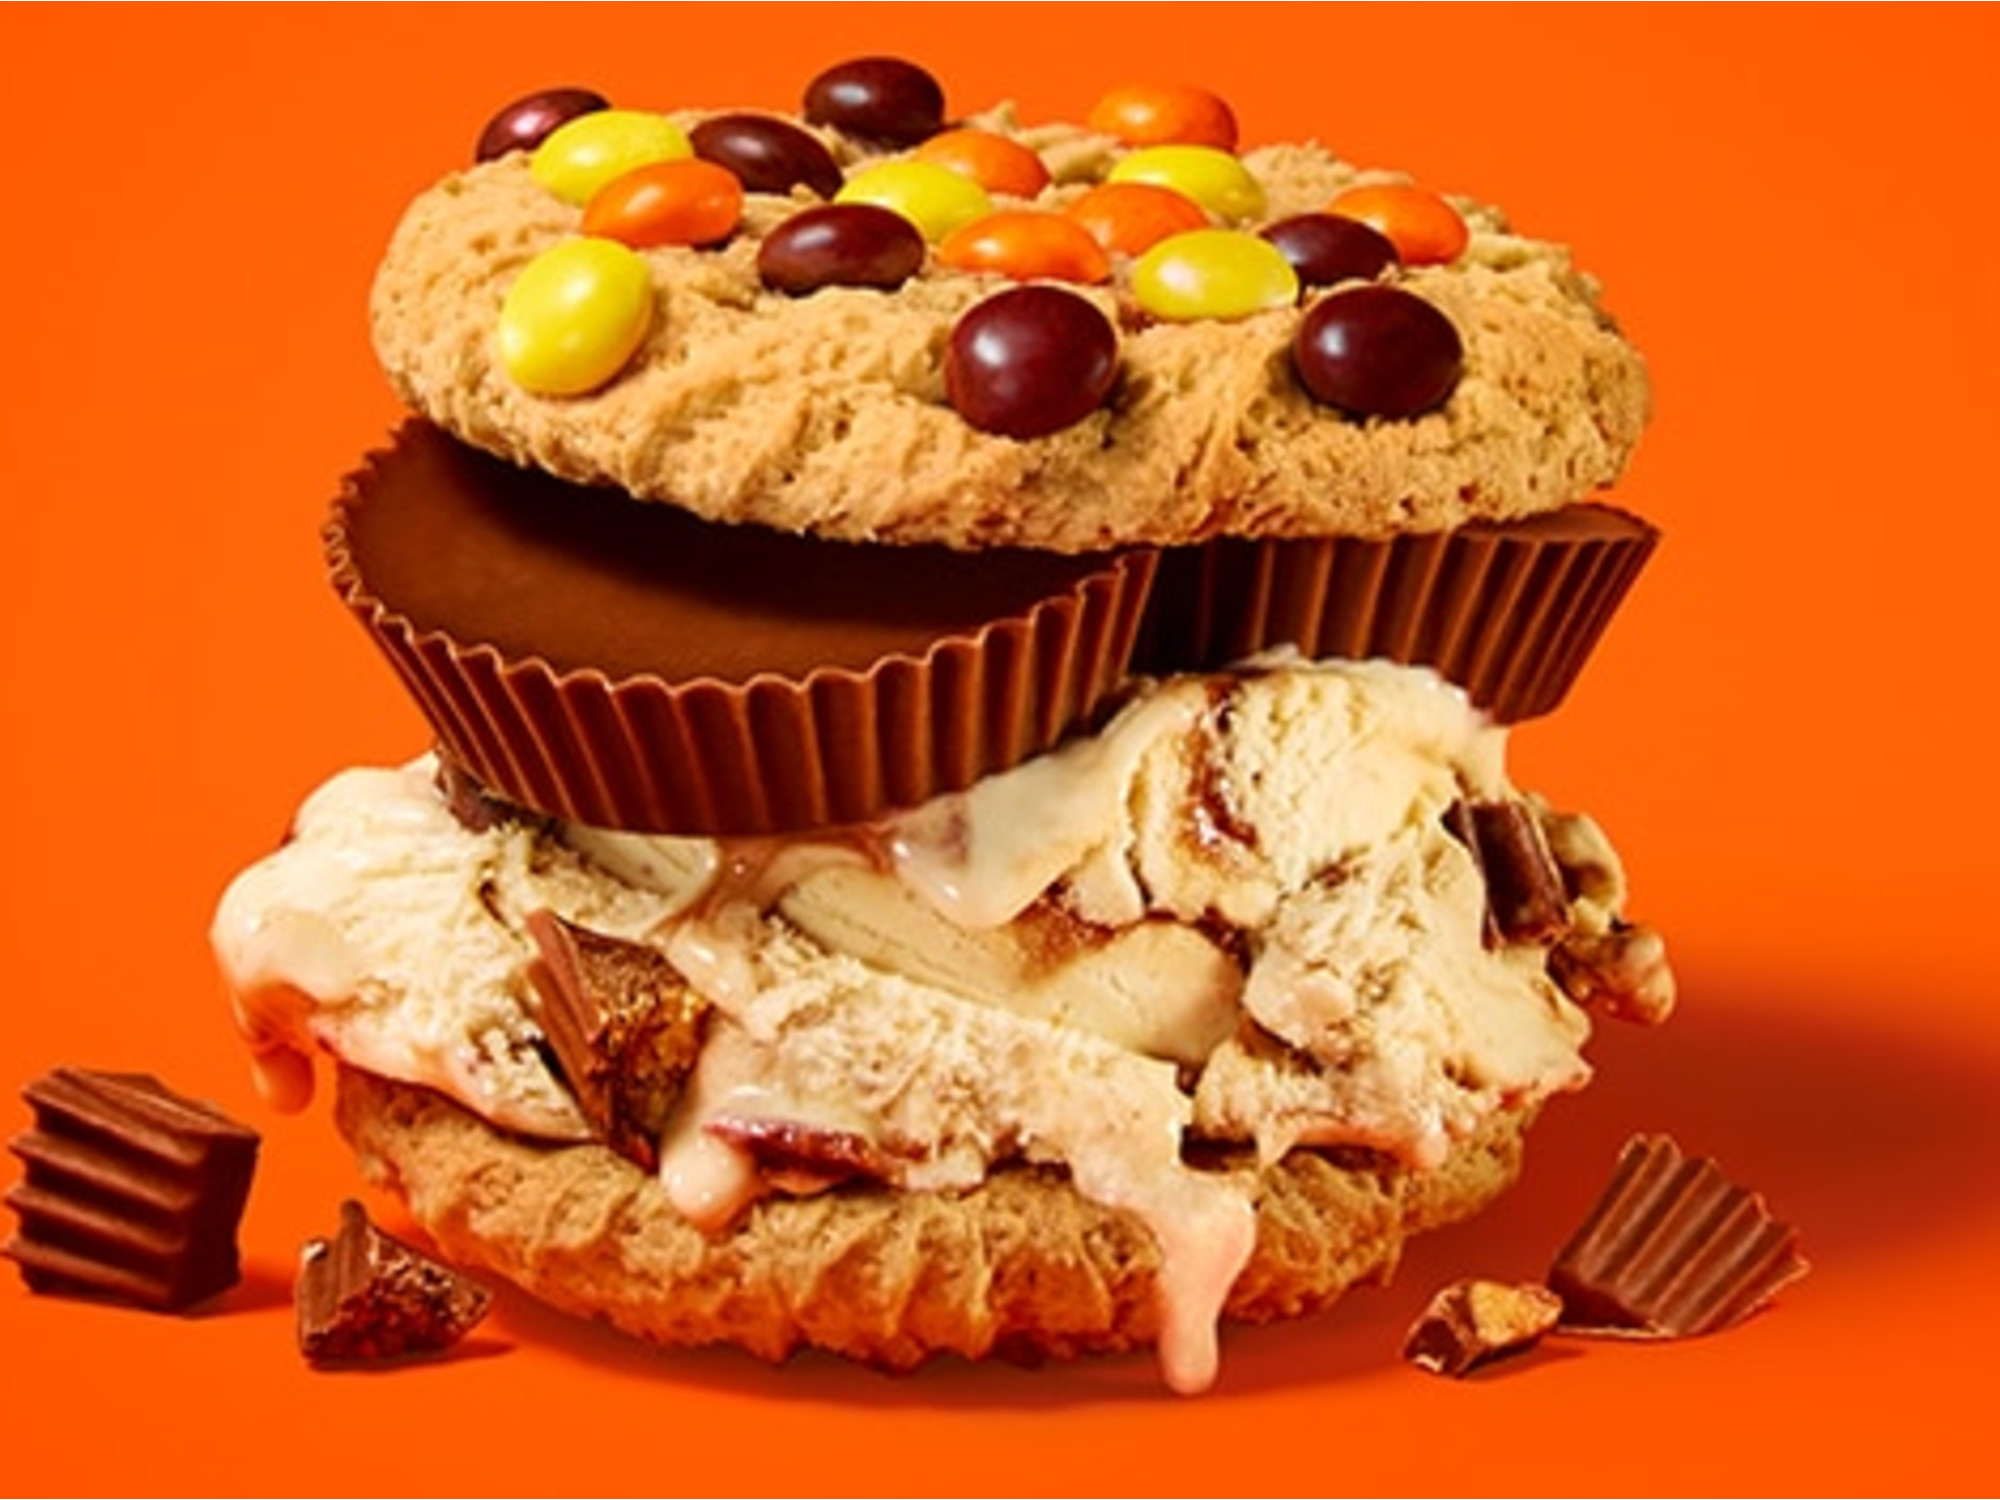 Reese's Peanut Butter Cup Glorious  Cookie Sandwiches